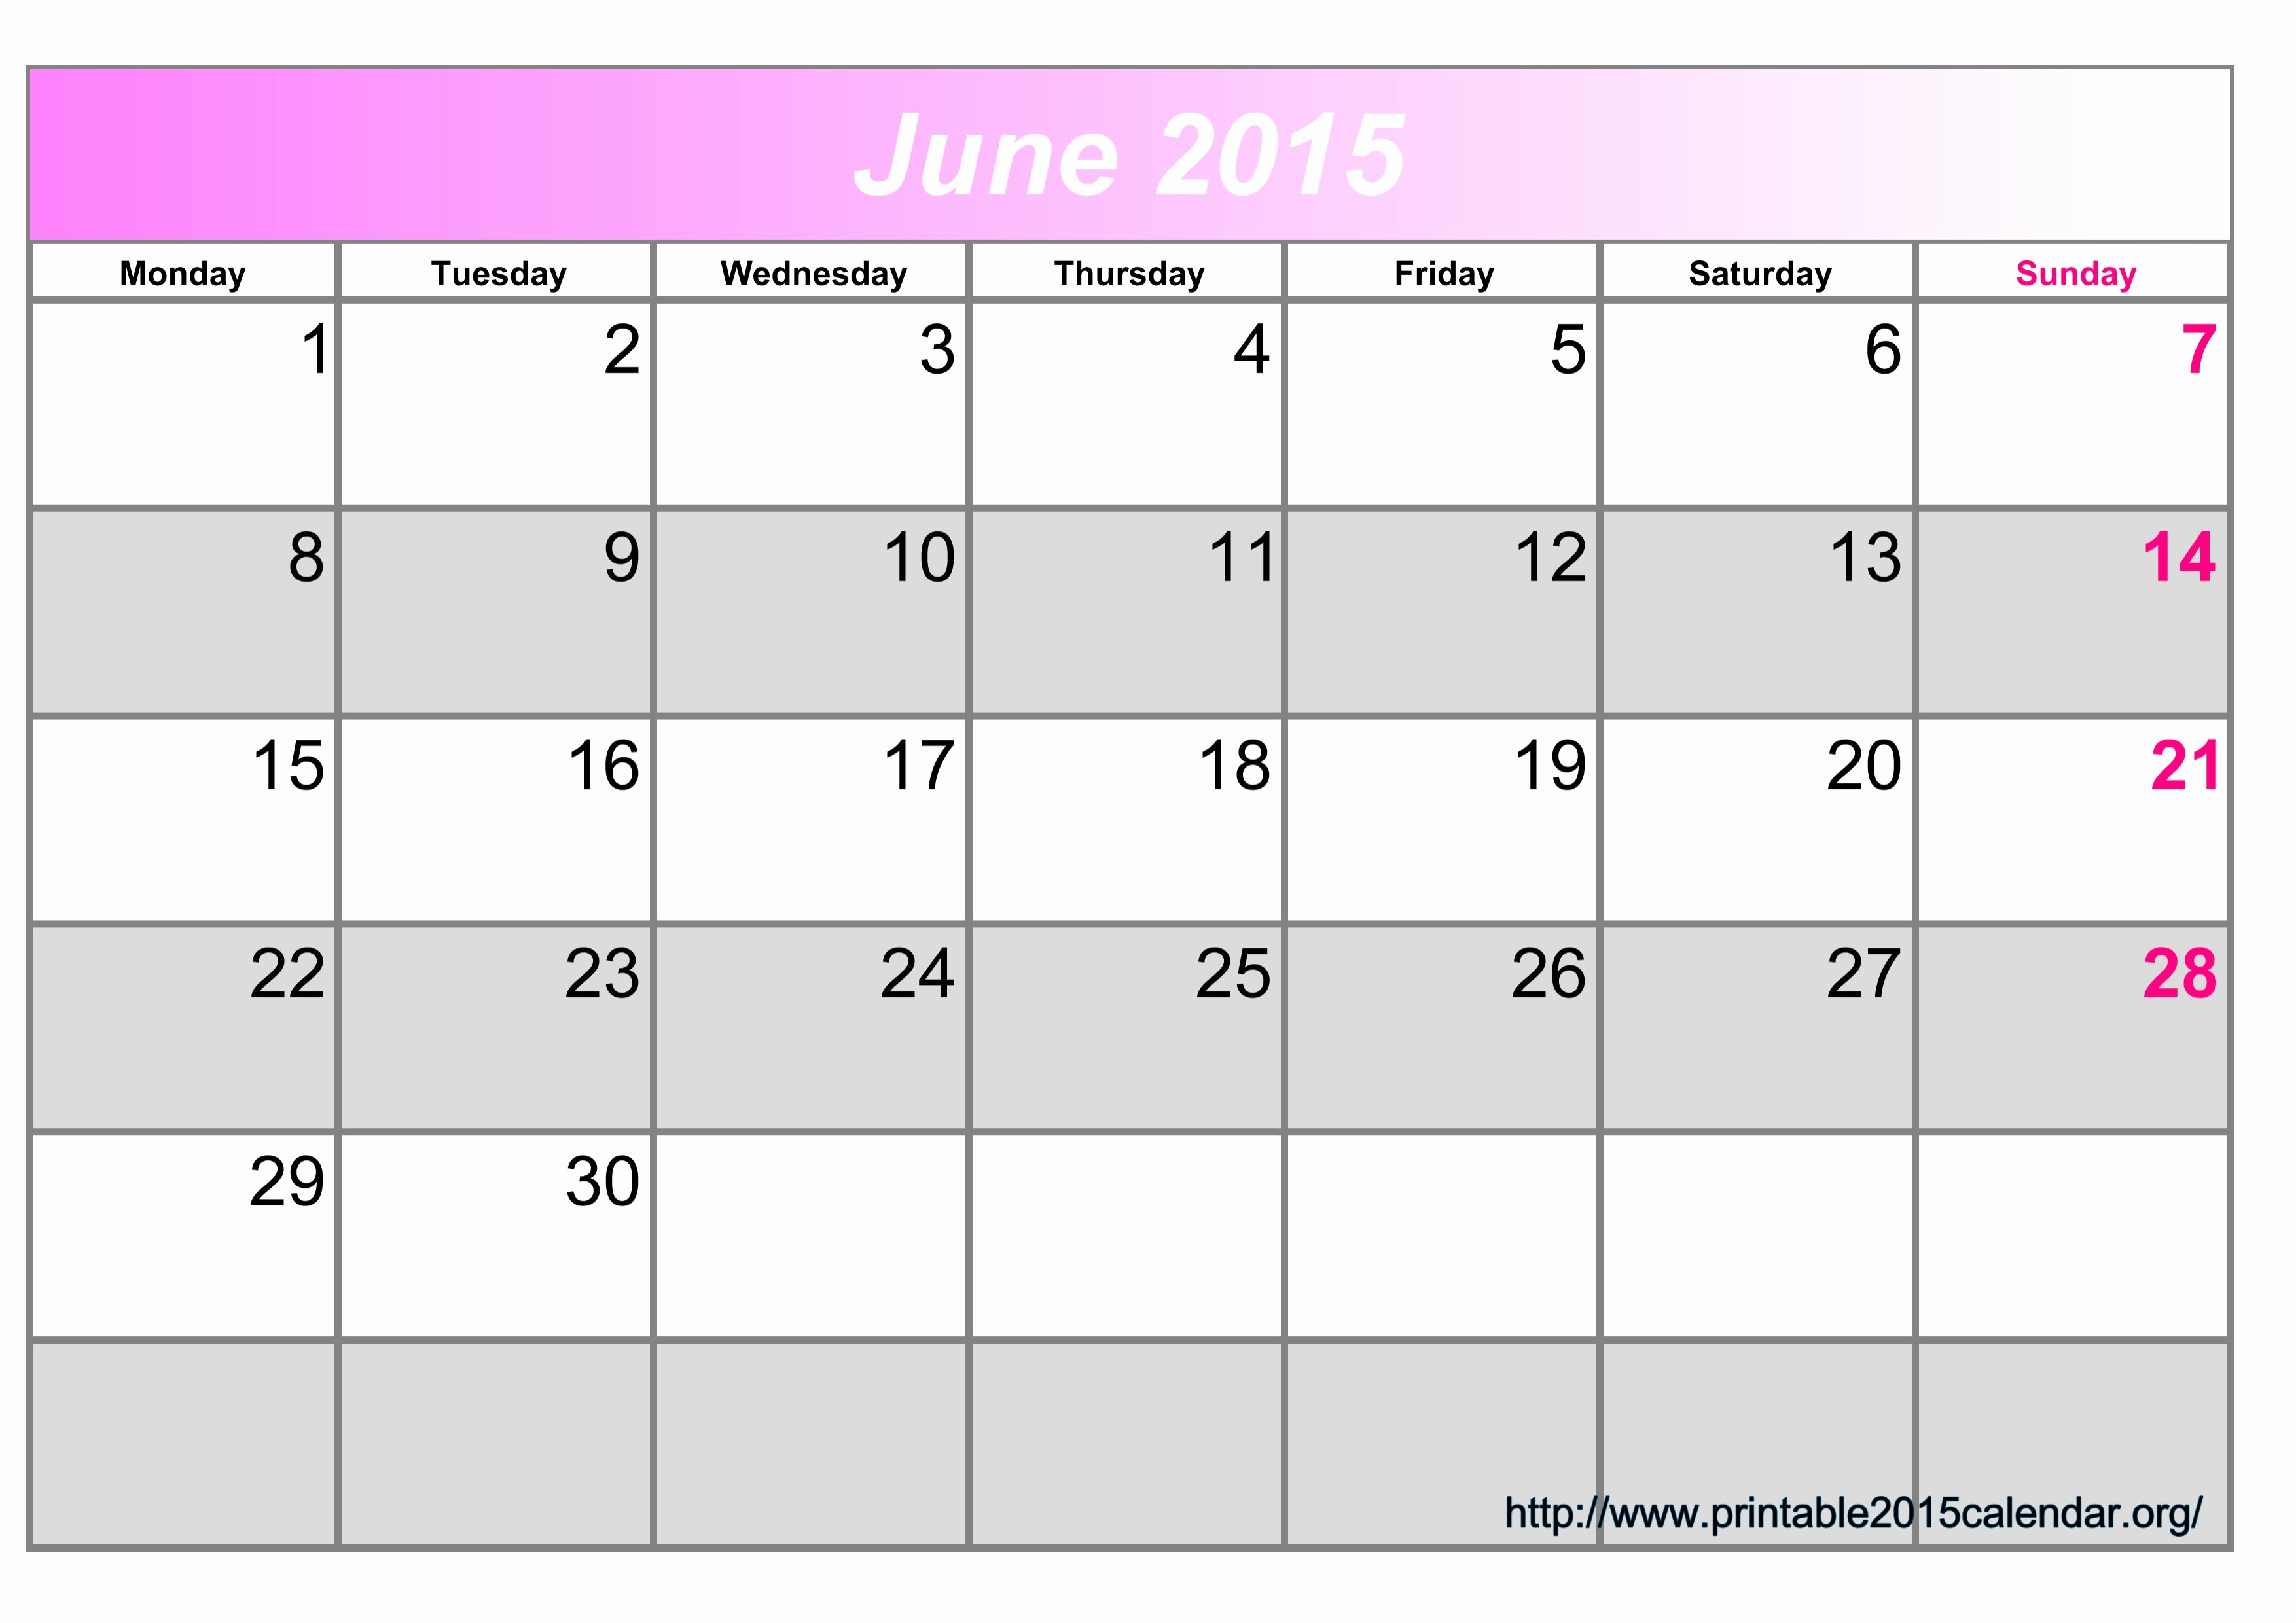 Calendar Template for June 2015 Fresh 8 Best Of Printable June 2015 Calendar March 2015